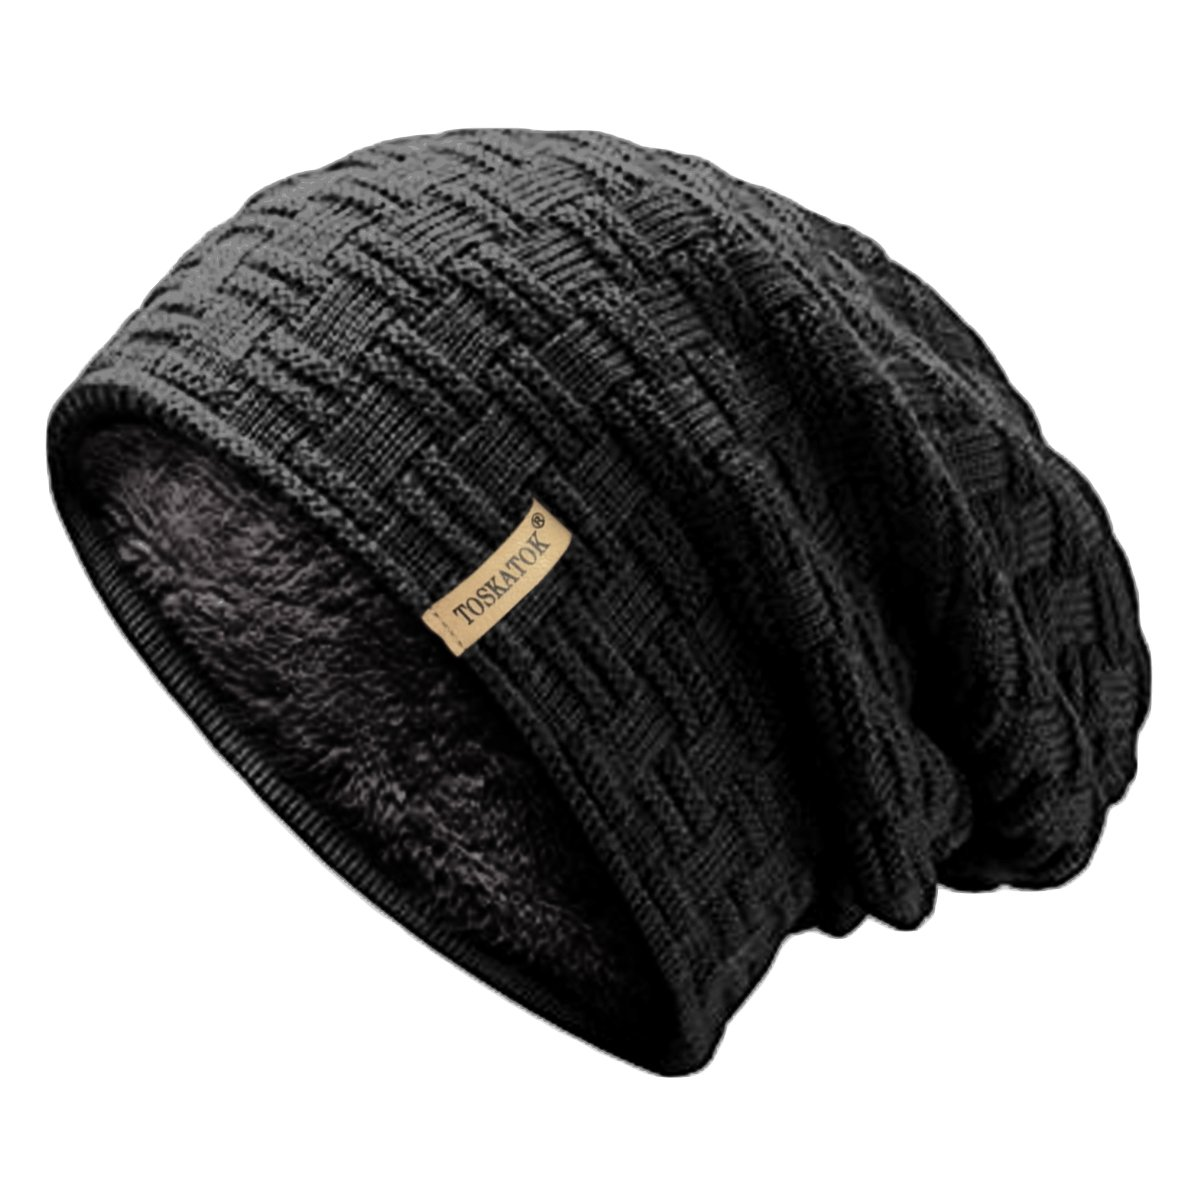 fb333ccef562 TOSKATOK Ladies Mens Unisex Warm Winter Textured Knit Slouch Beanie Hat  with Cosy Faux Fur Teddy Fleece Liner-Black: Amazon.co.uk: Clothing